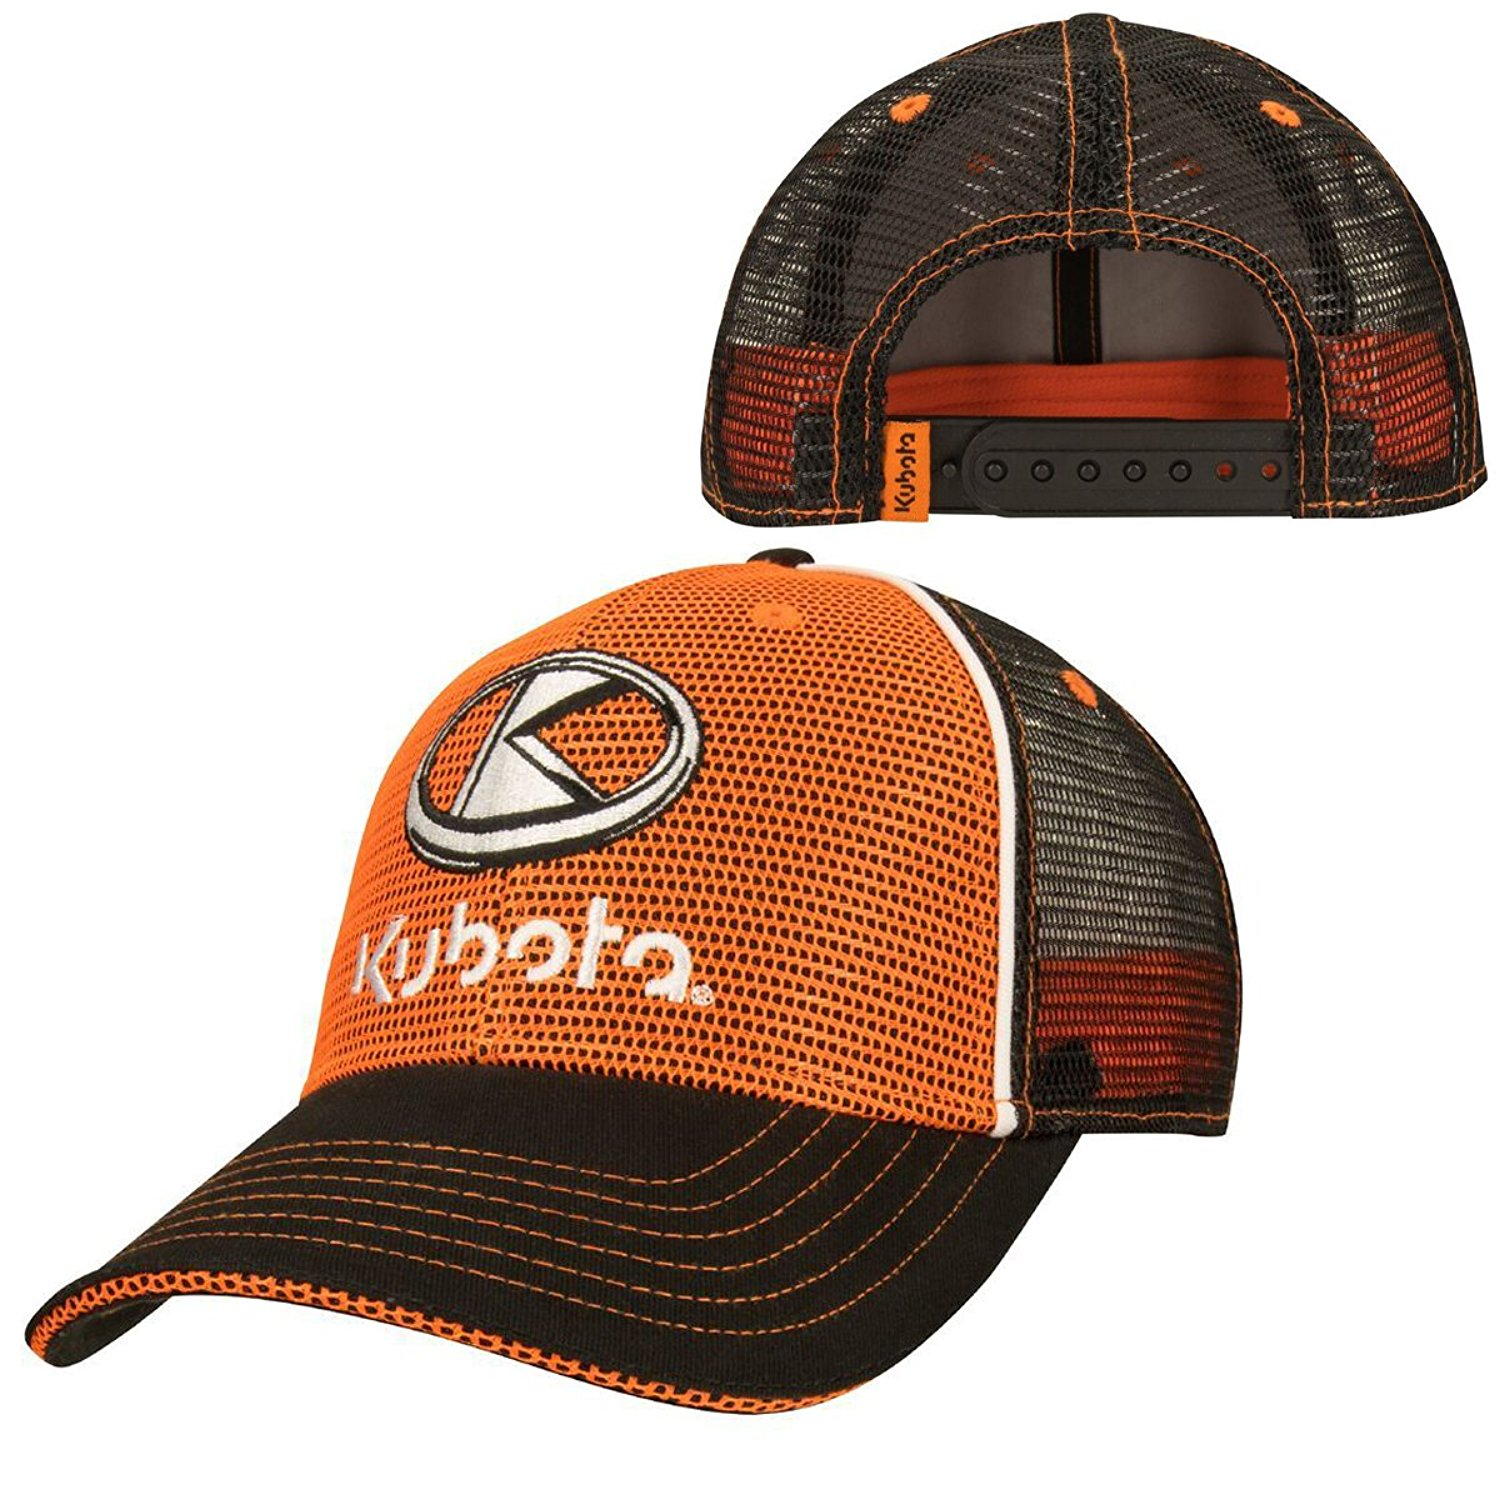 9481f419 Cheap Truckers Cap, find Truckers Cap deals on line at Alibaba.com